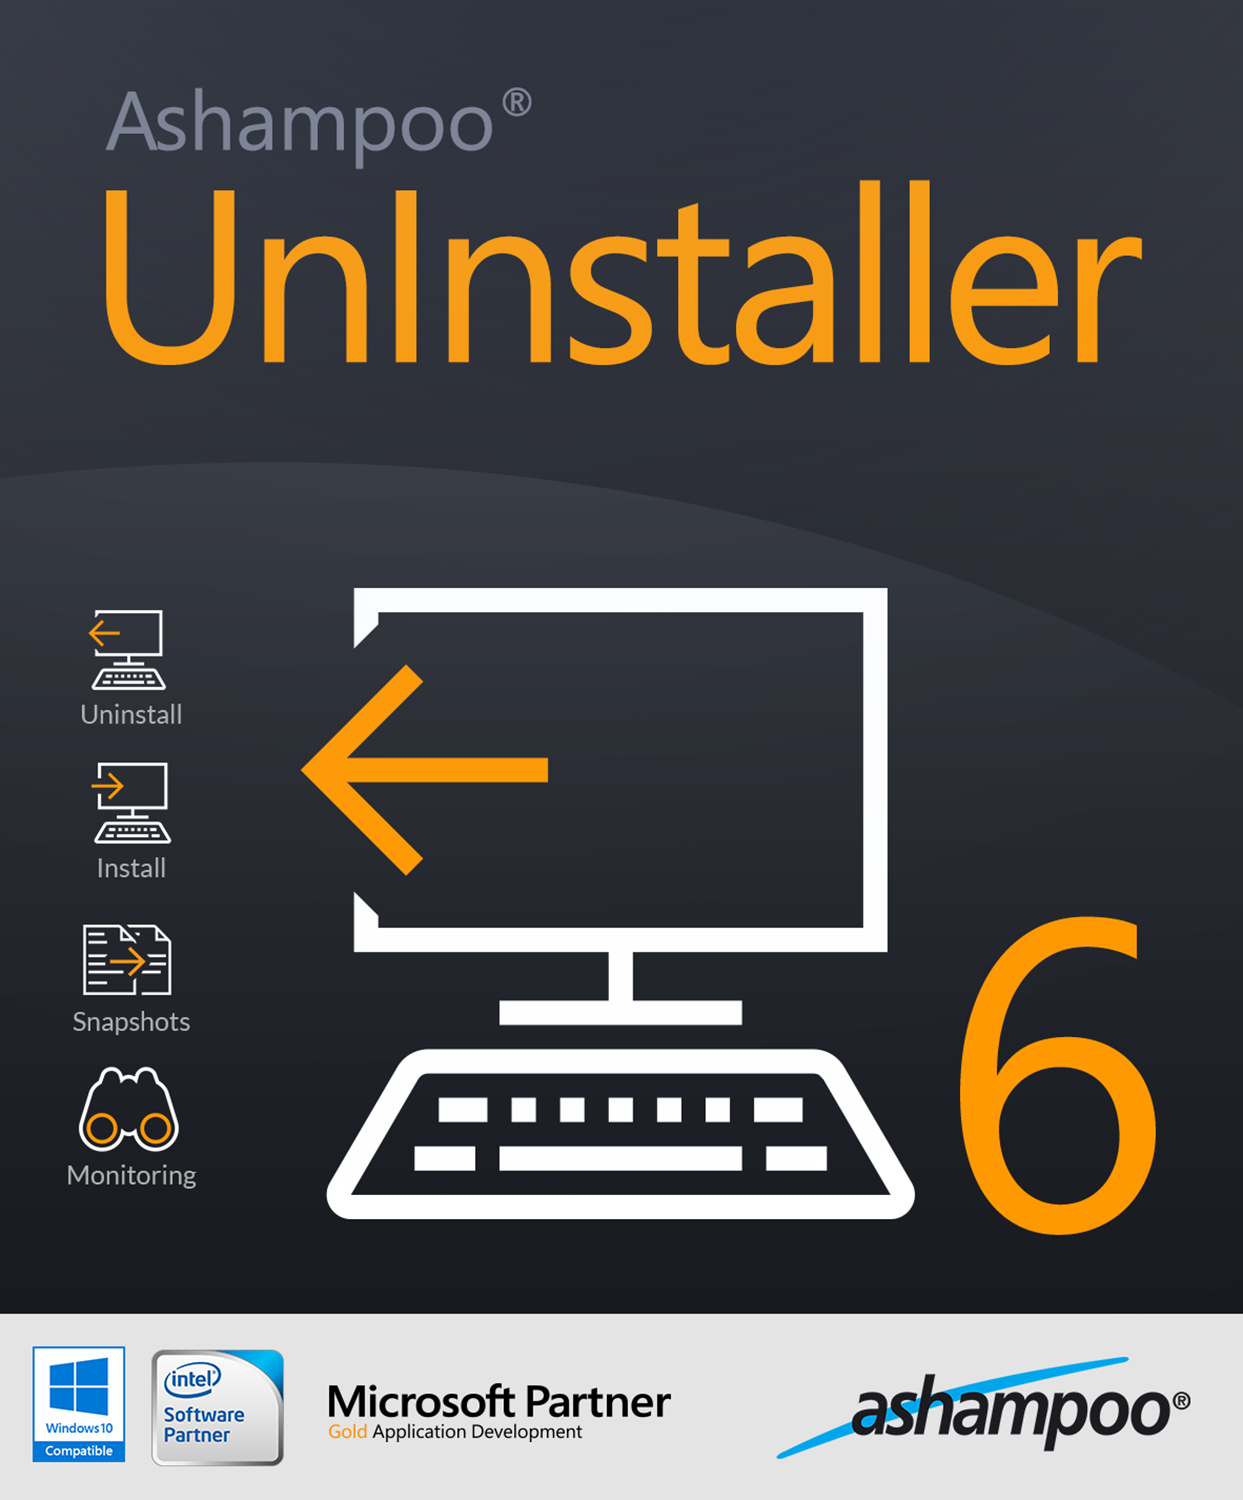 ashampoo-uninstaller-6-telechargement